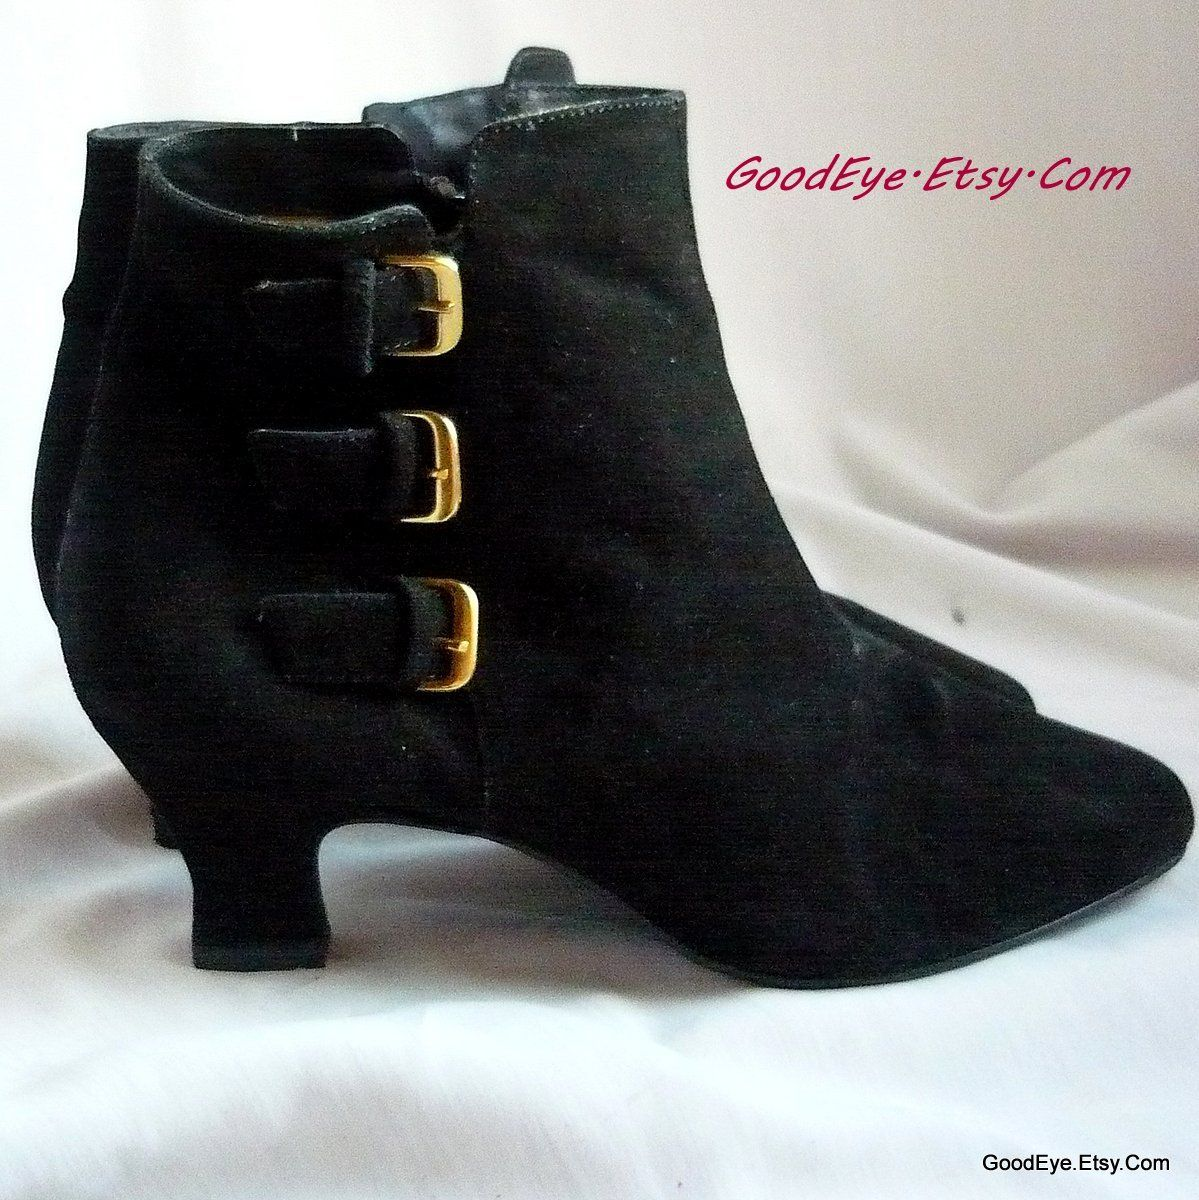 Enzo Granny Ankle Boots Size 6 5 Eu 37 Uk 3 5 90s Punk Pixie Kitten Heel Shoes Made Brazil Black Suede Leather Kitten Heel Shoes Boots Suede Leather